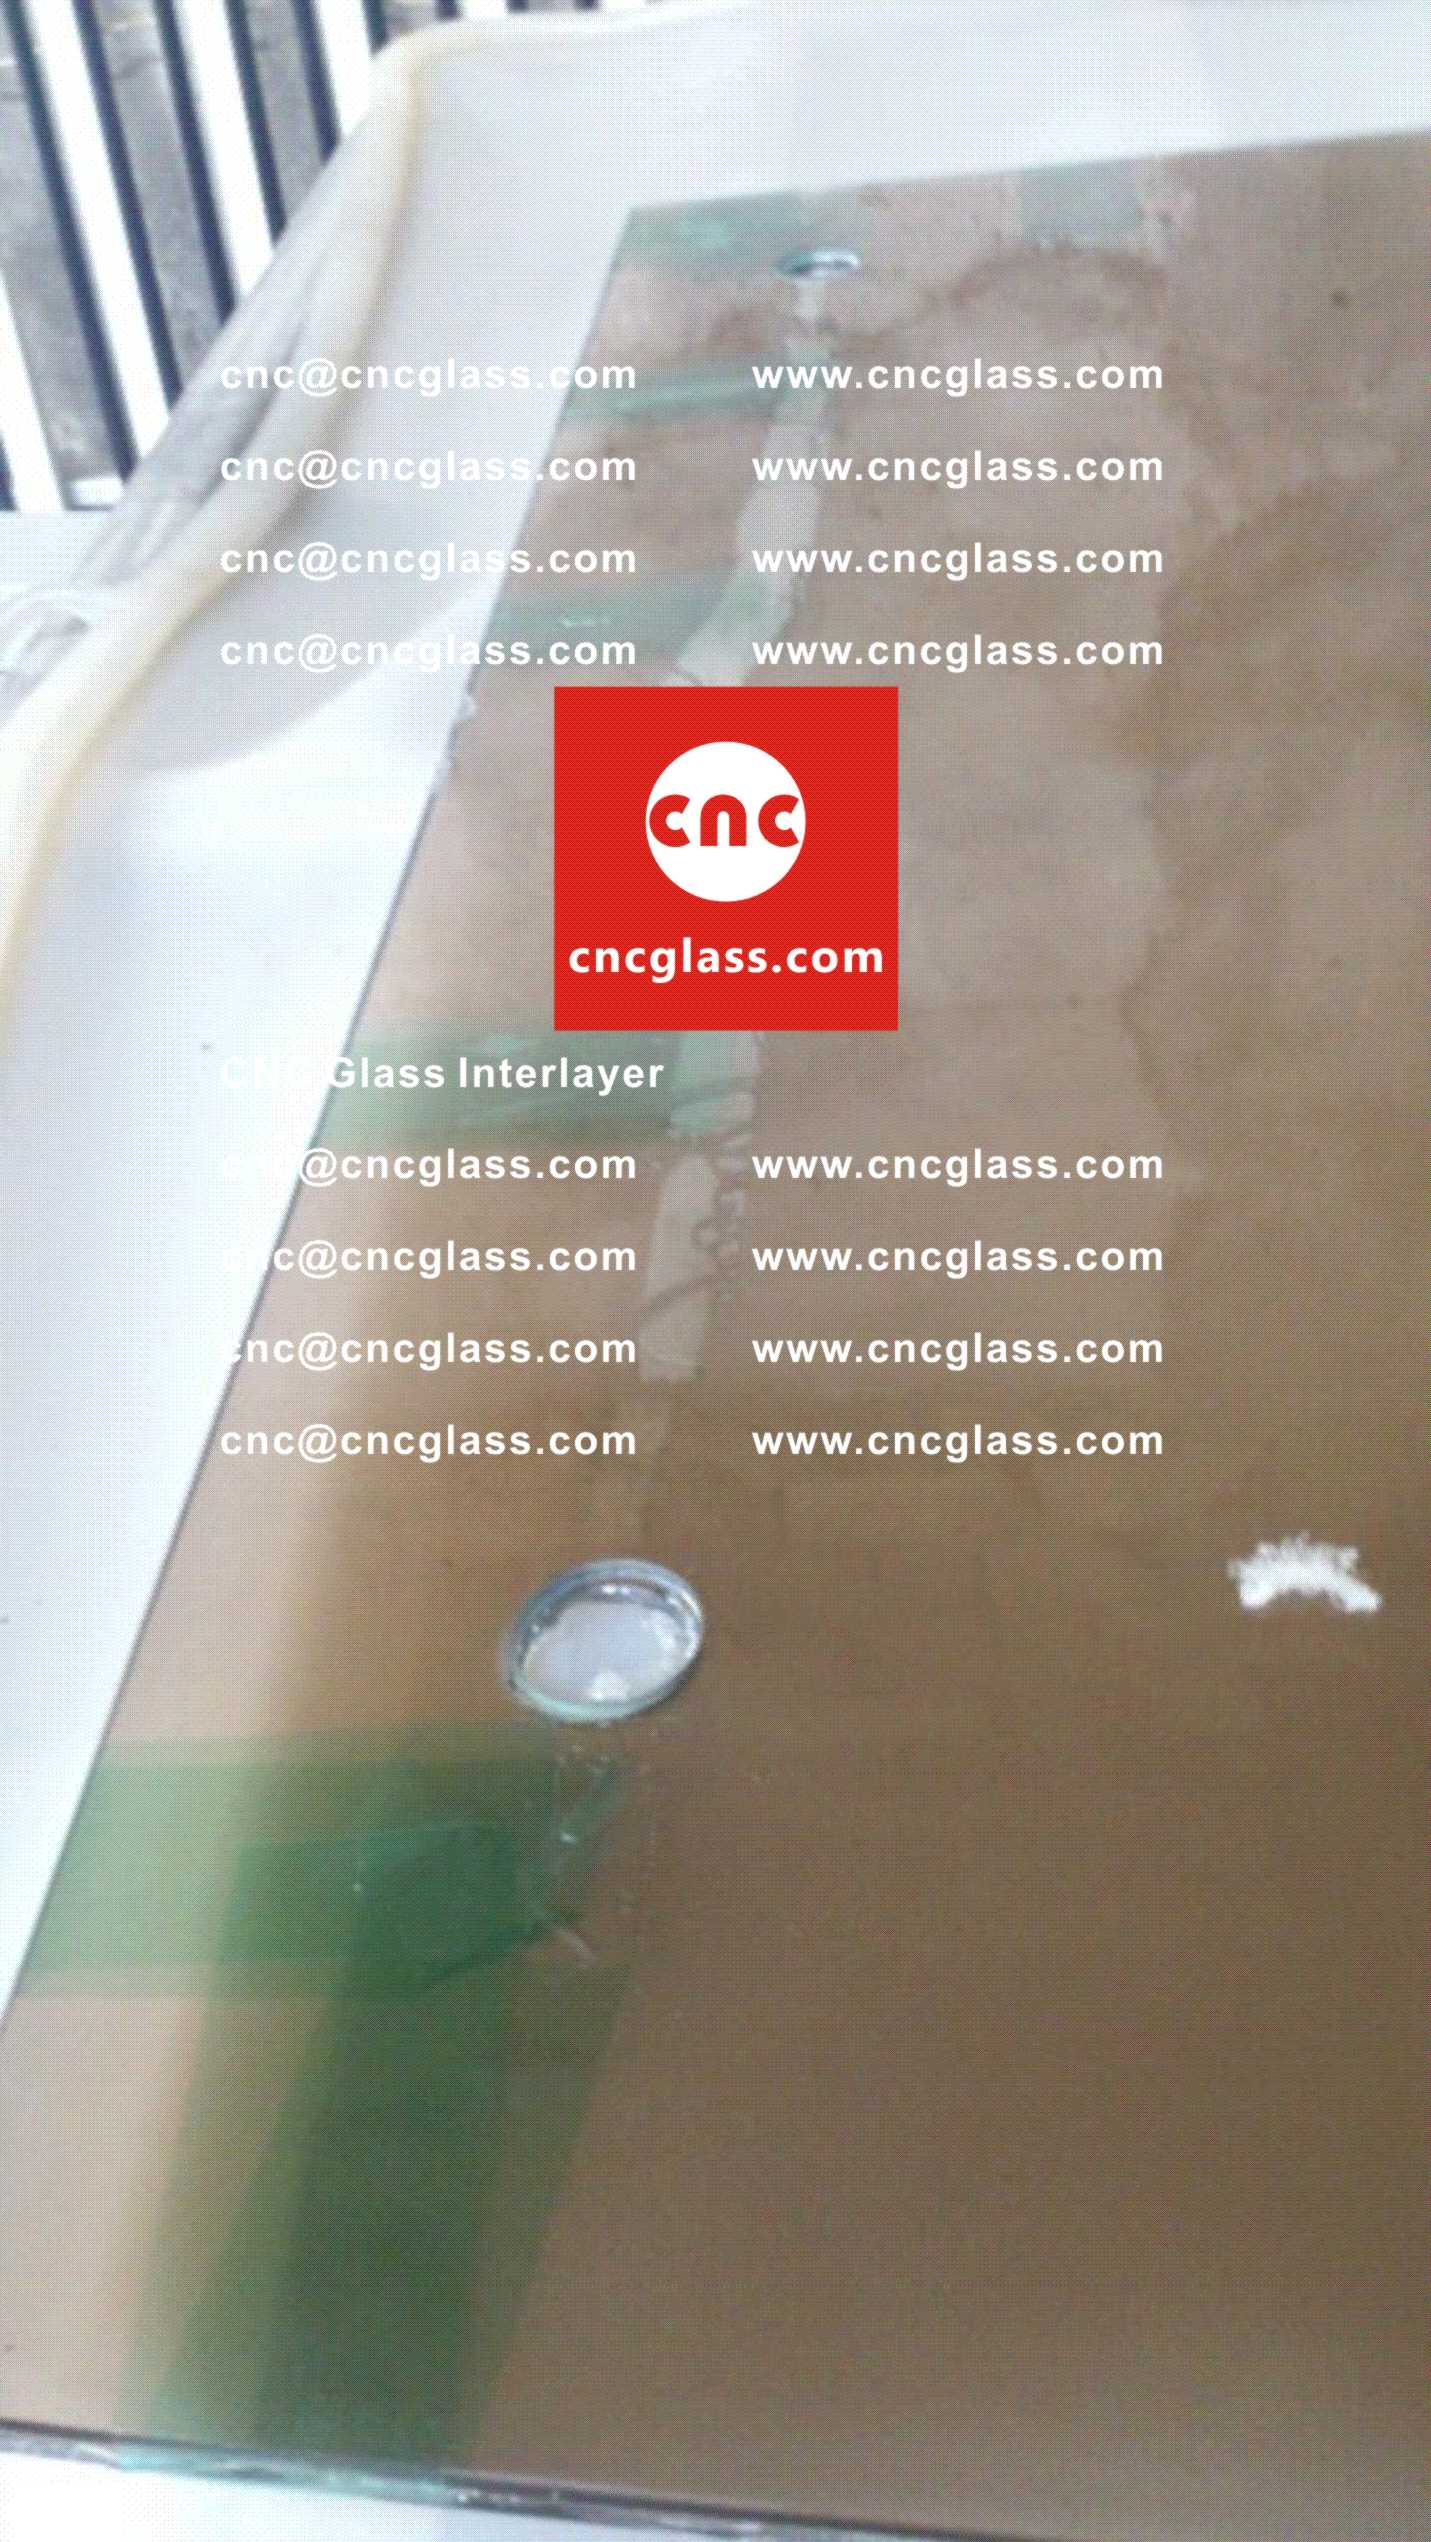 Too High Temperature Causing Bubbles in EVA Film Safety Laminated Glass Glazing (Practical Case Study) (1)